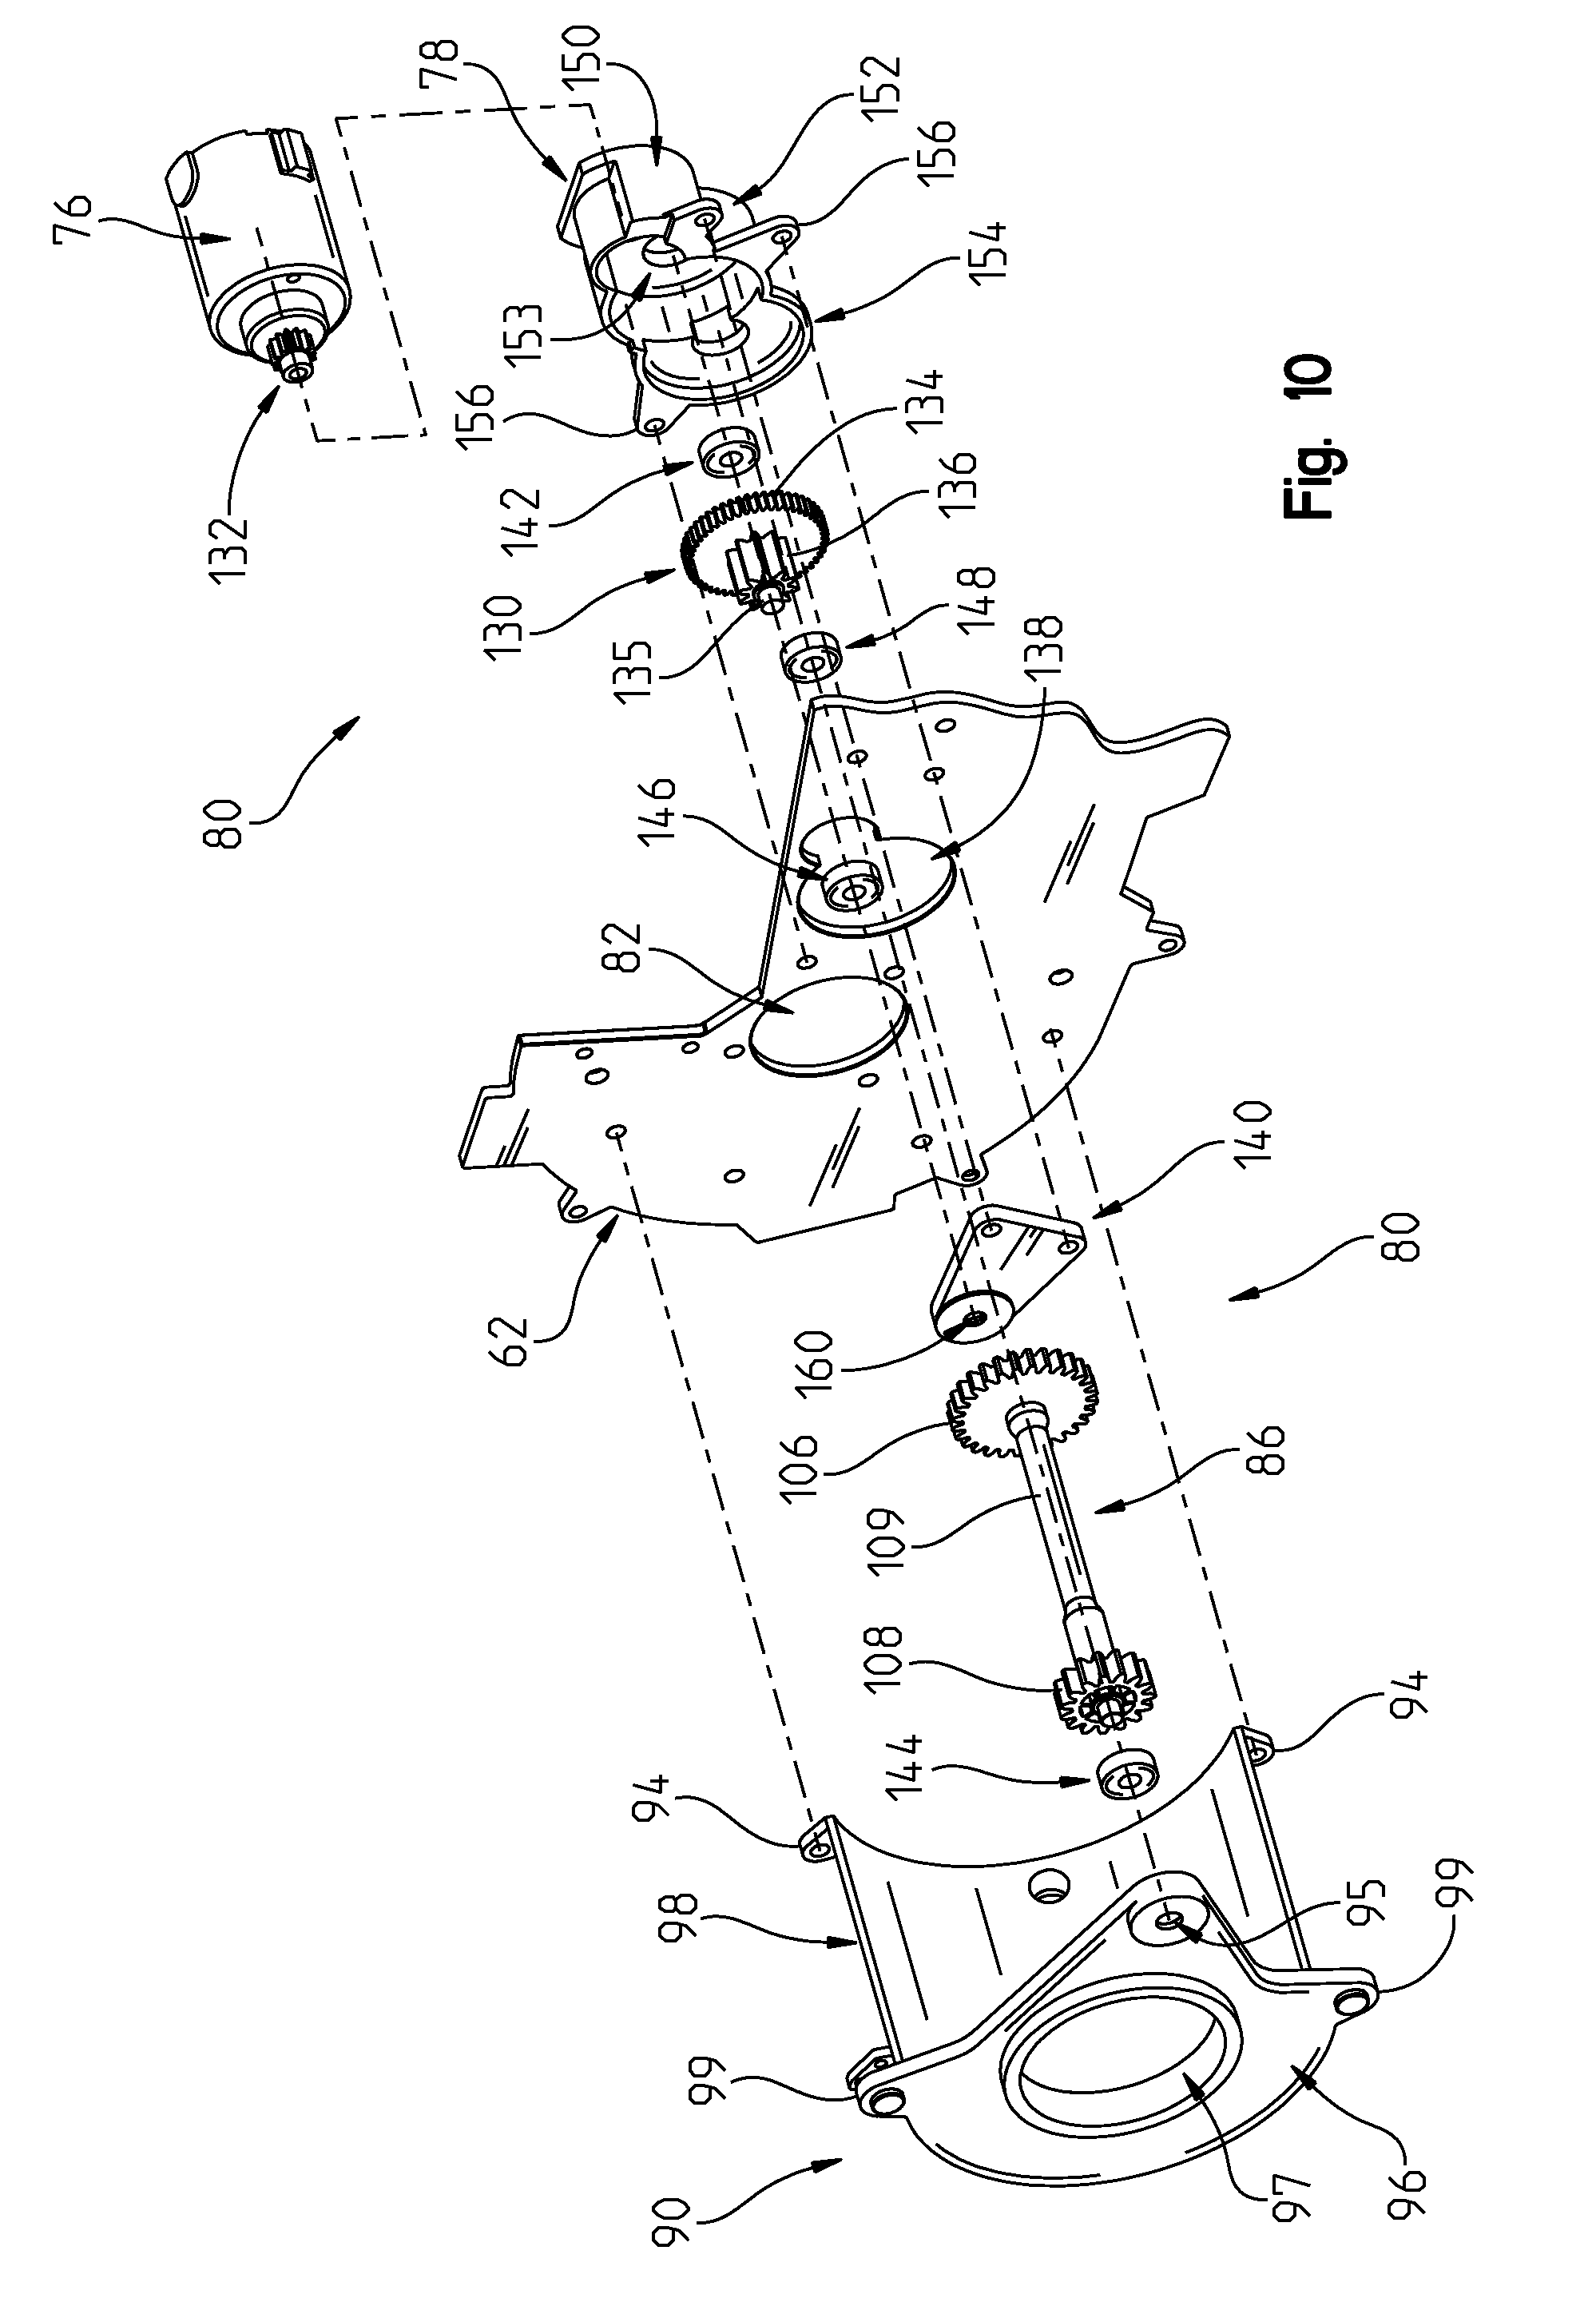 patent us8684887 - primary clutch electronic cvt